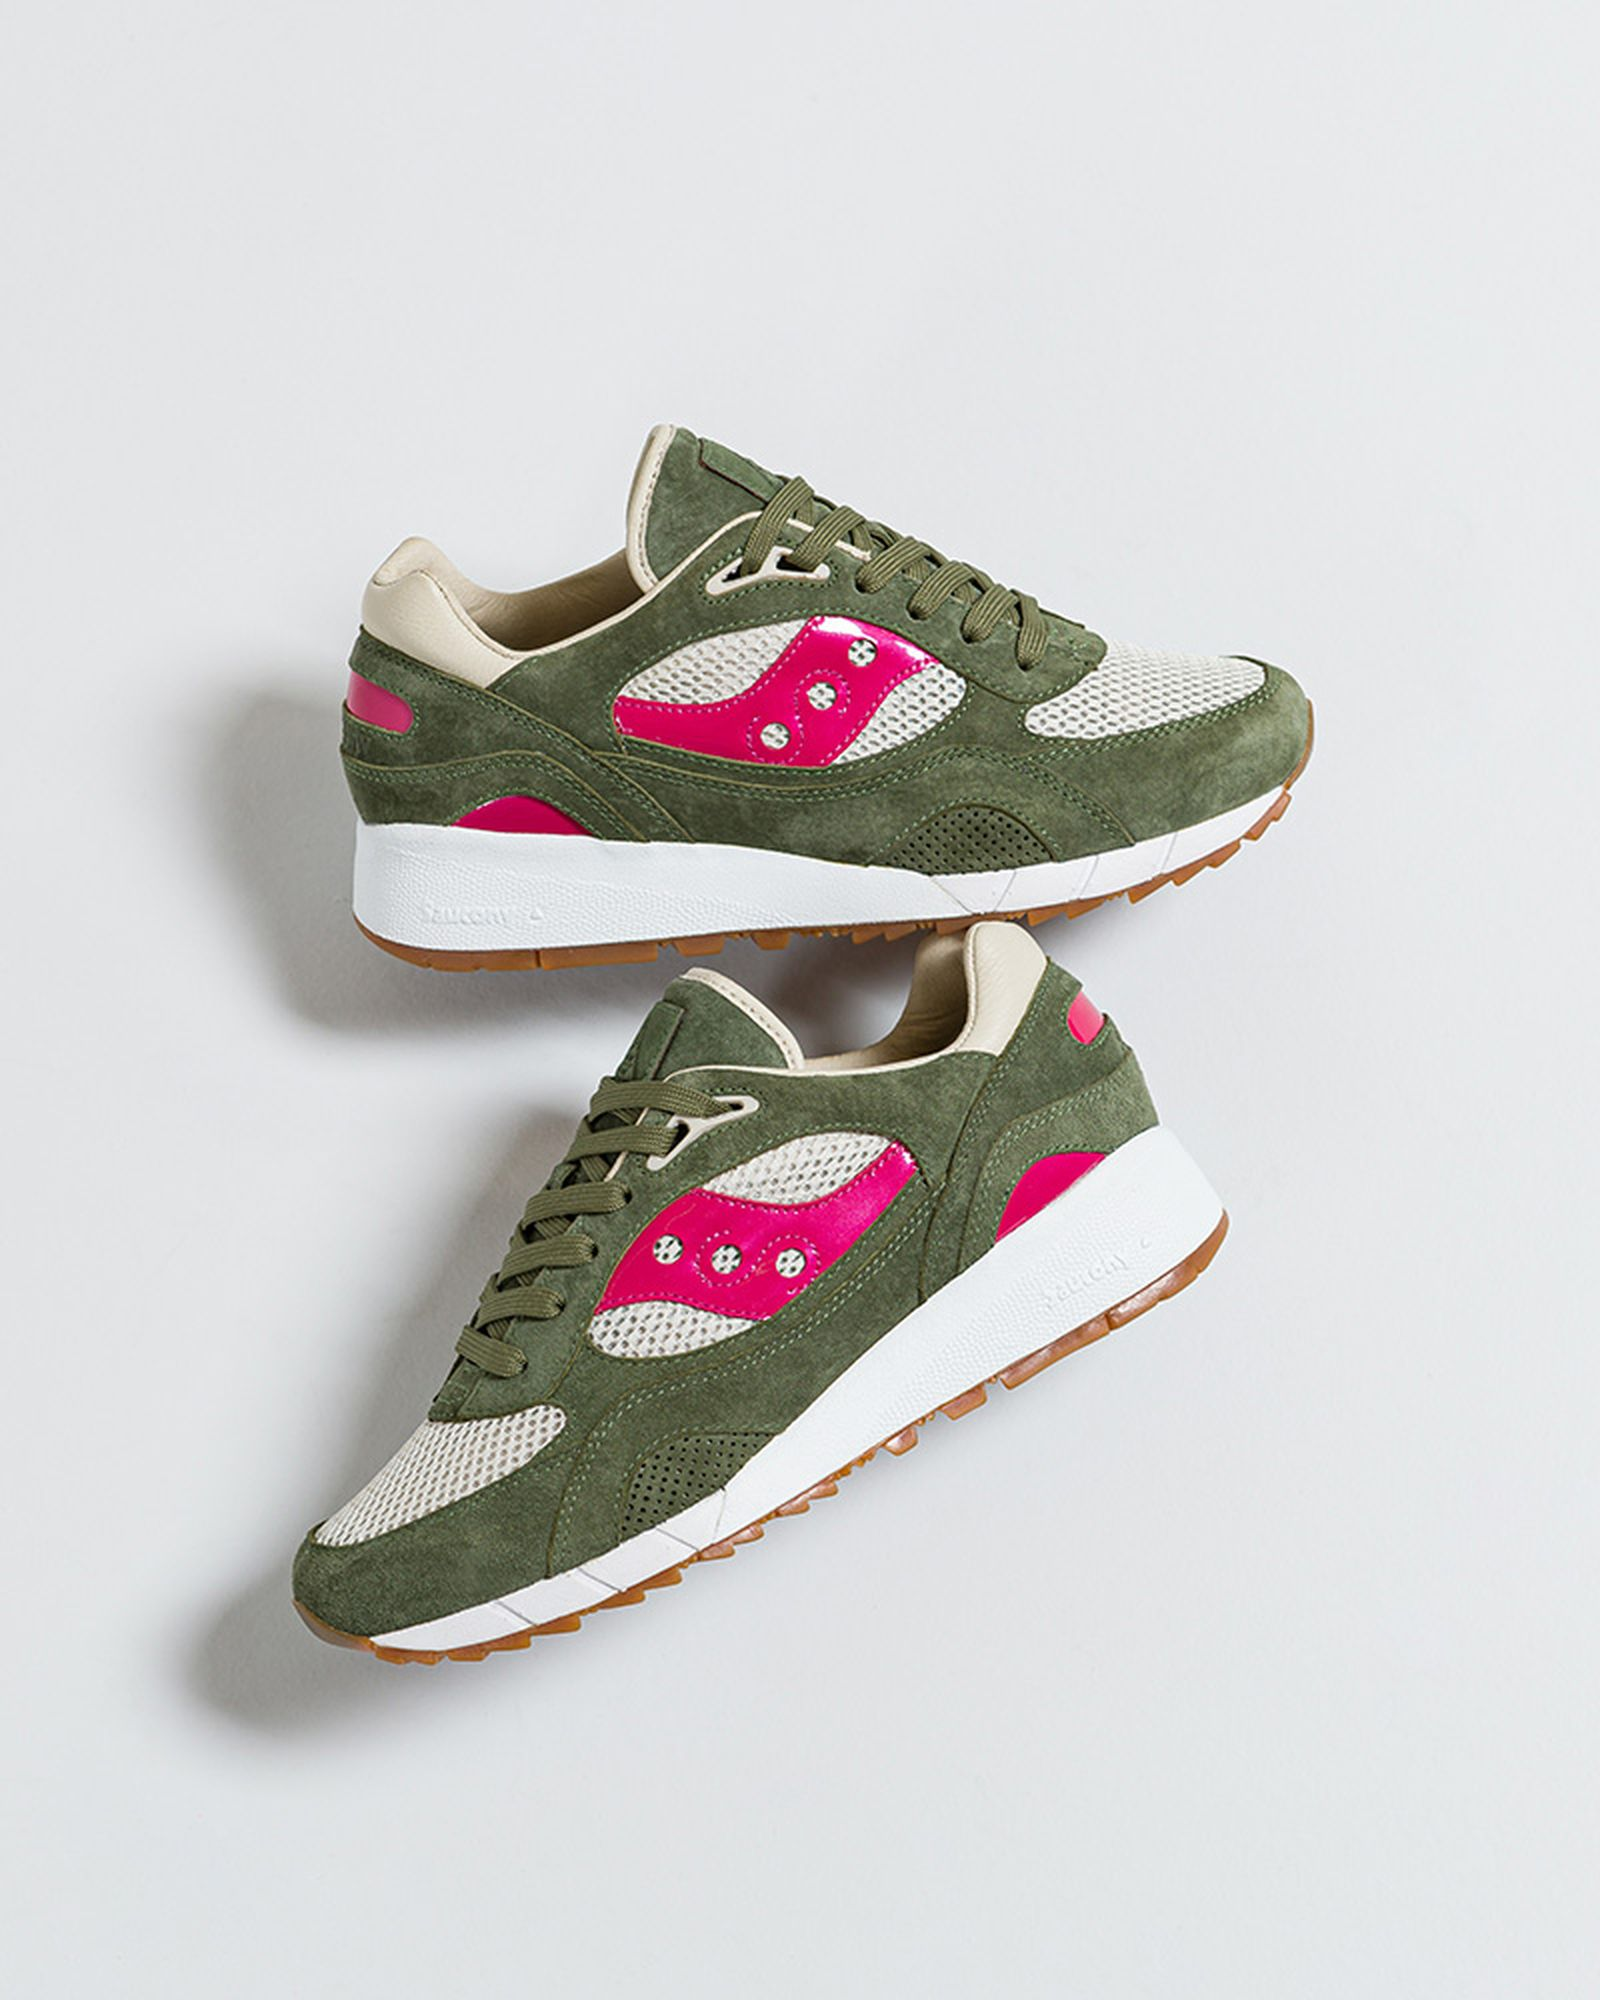 up-there-saucony-shadow-6000-release-date-price-03